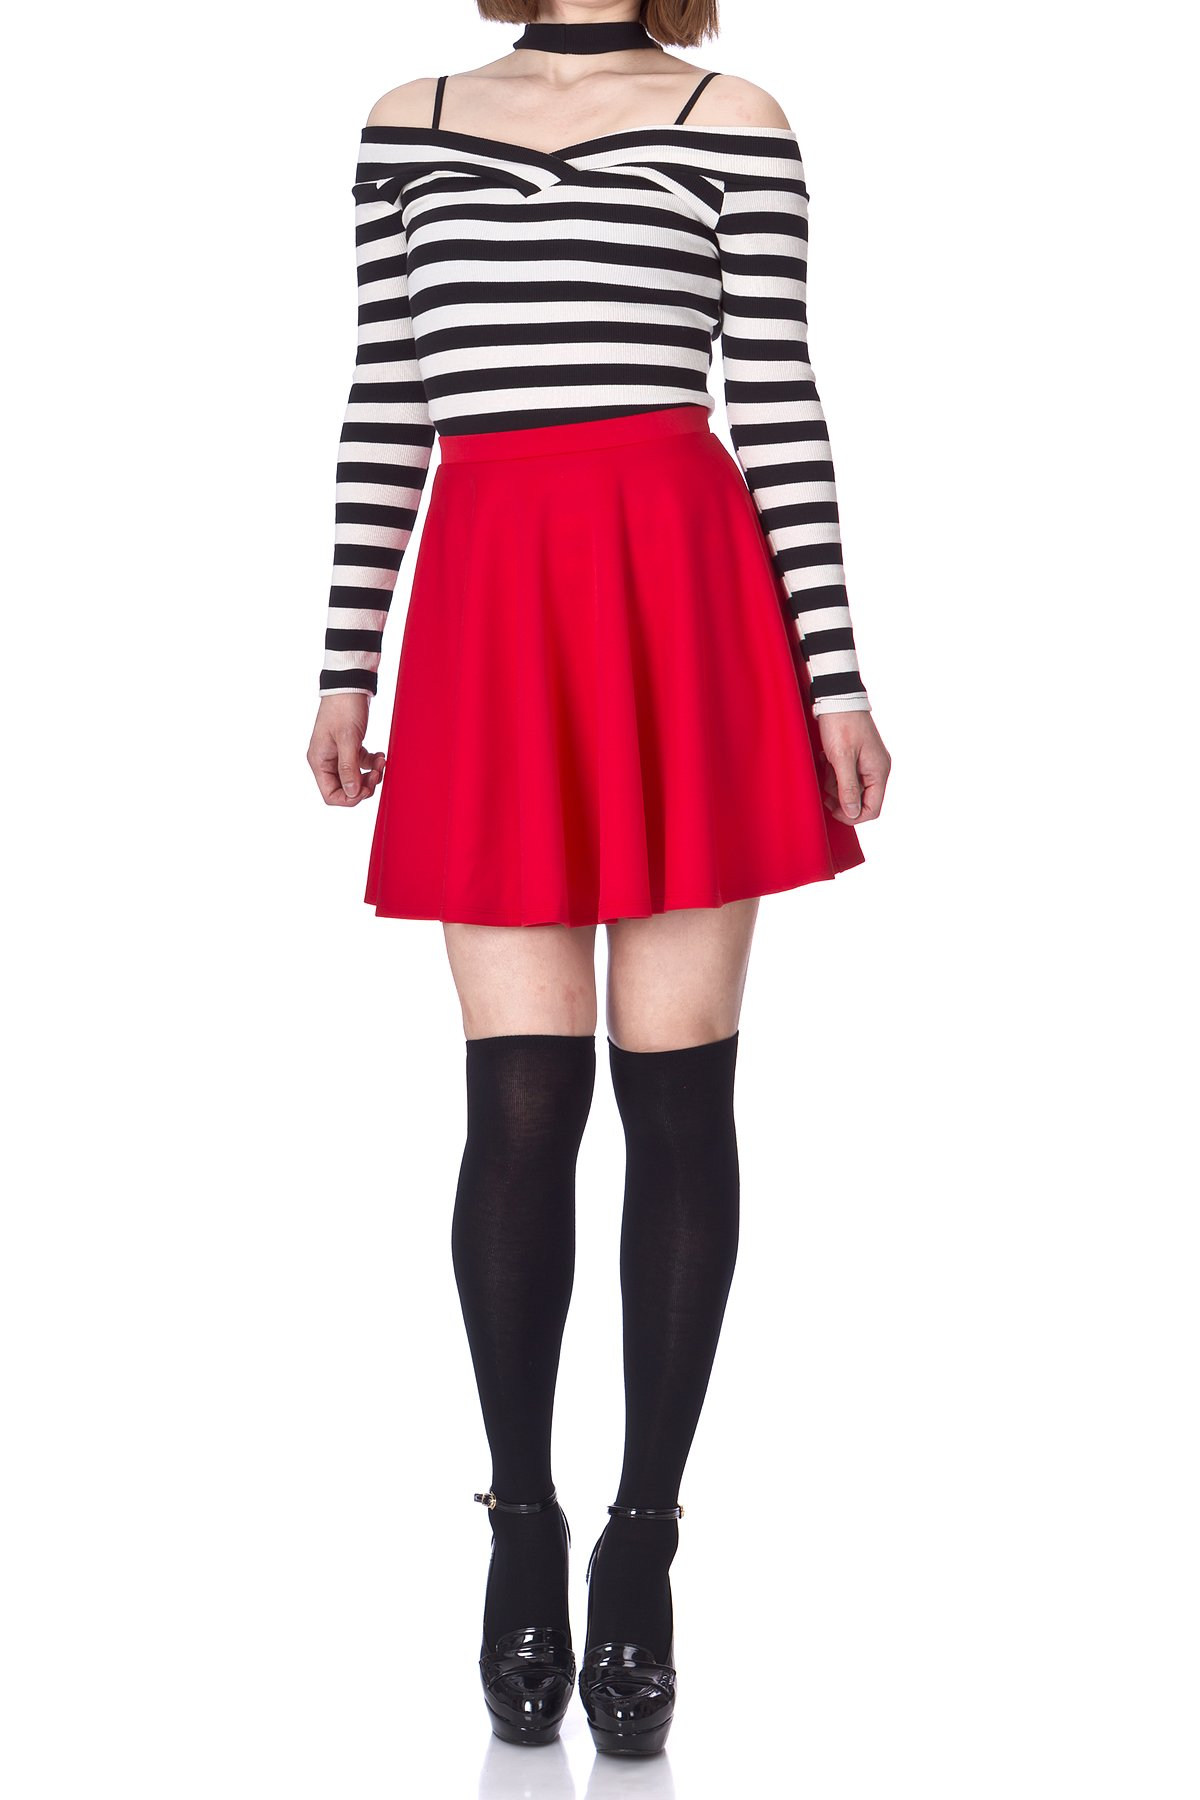 Flouncy High Waist A line Full Flared Circle Swing Dance Party Casual Skater Short Mini Skirt Red 03